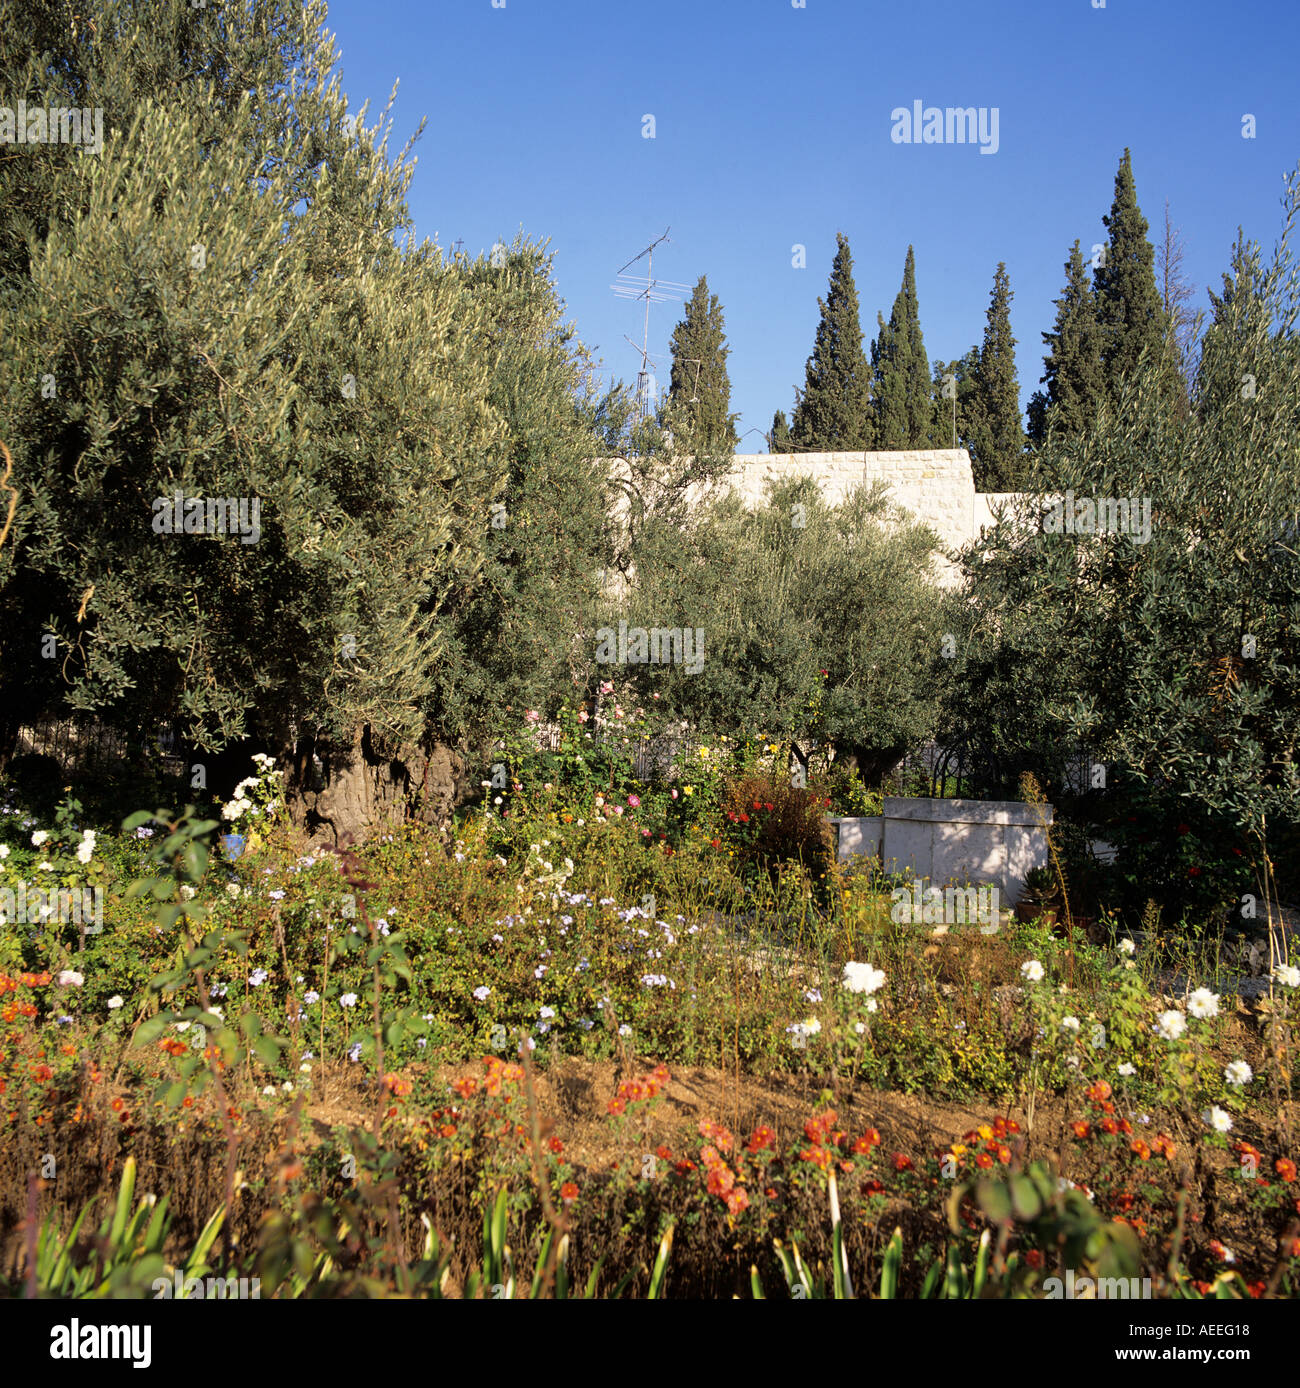 Garden of Gethsemane Jerusalem Israel Middle East Stock Photo ...